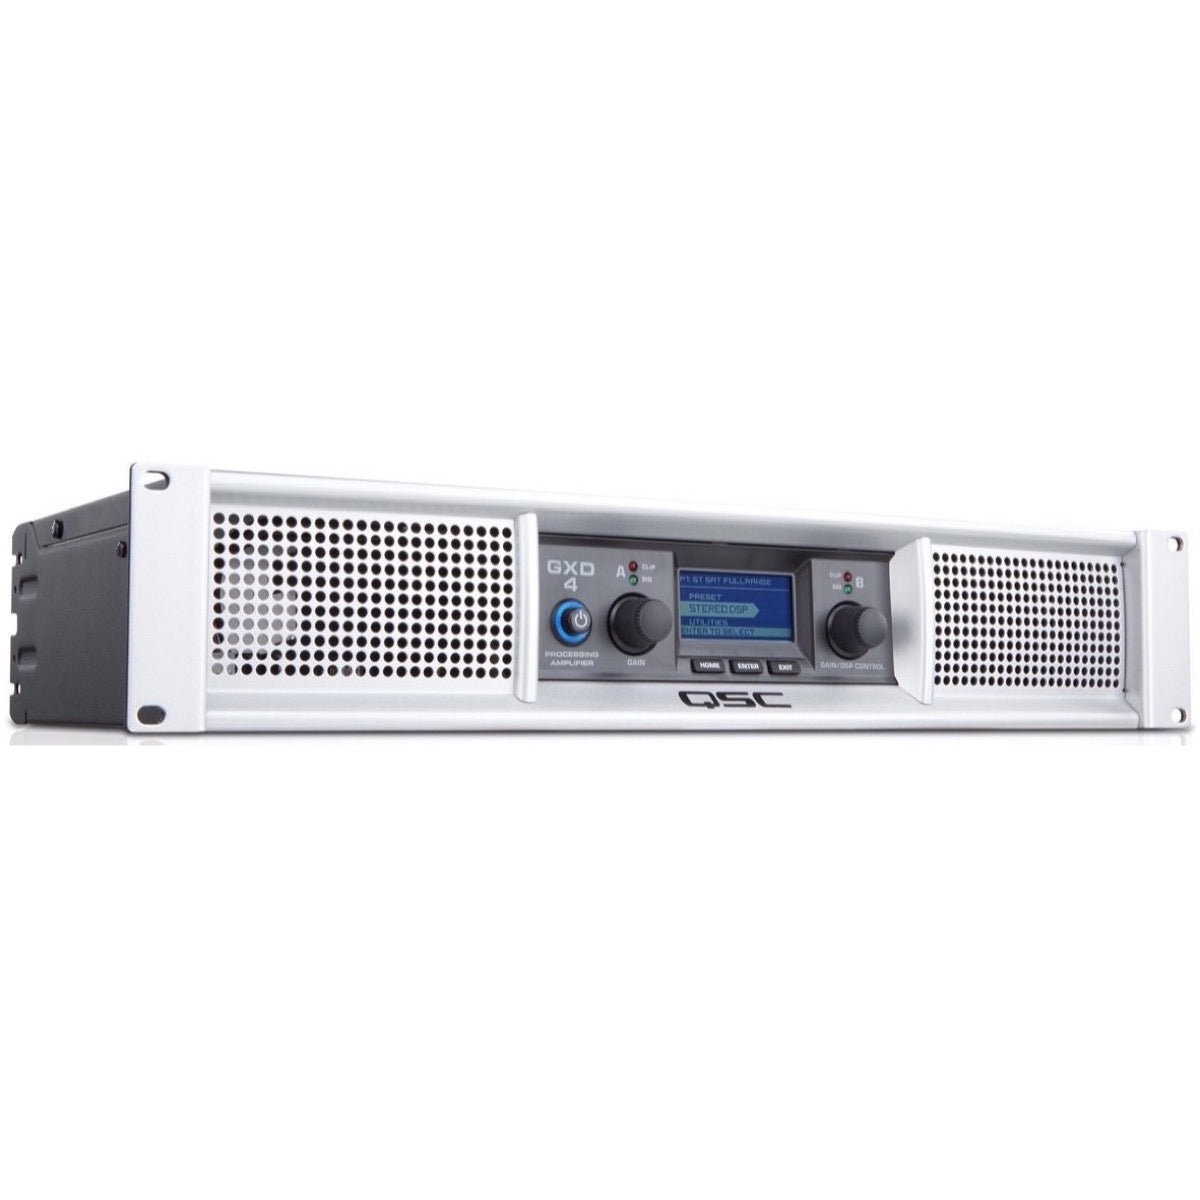 QSC GXD 4 Class D Power Amplifier with DSP